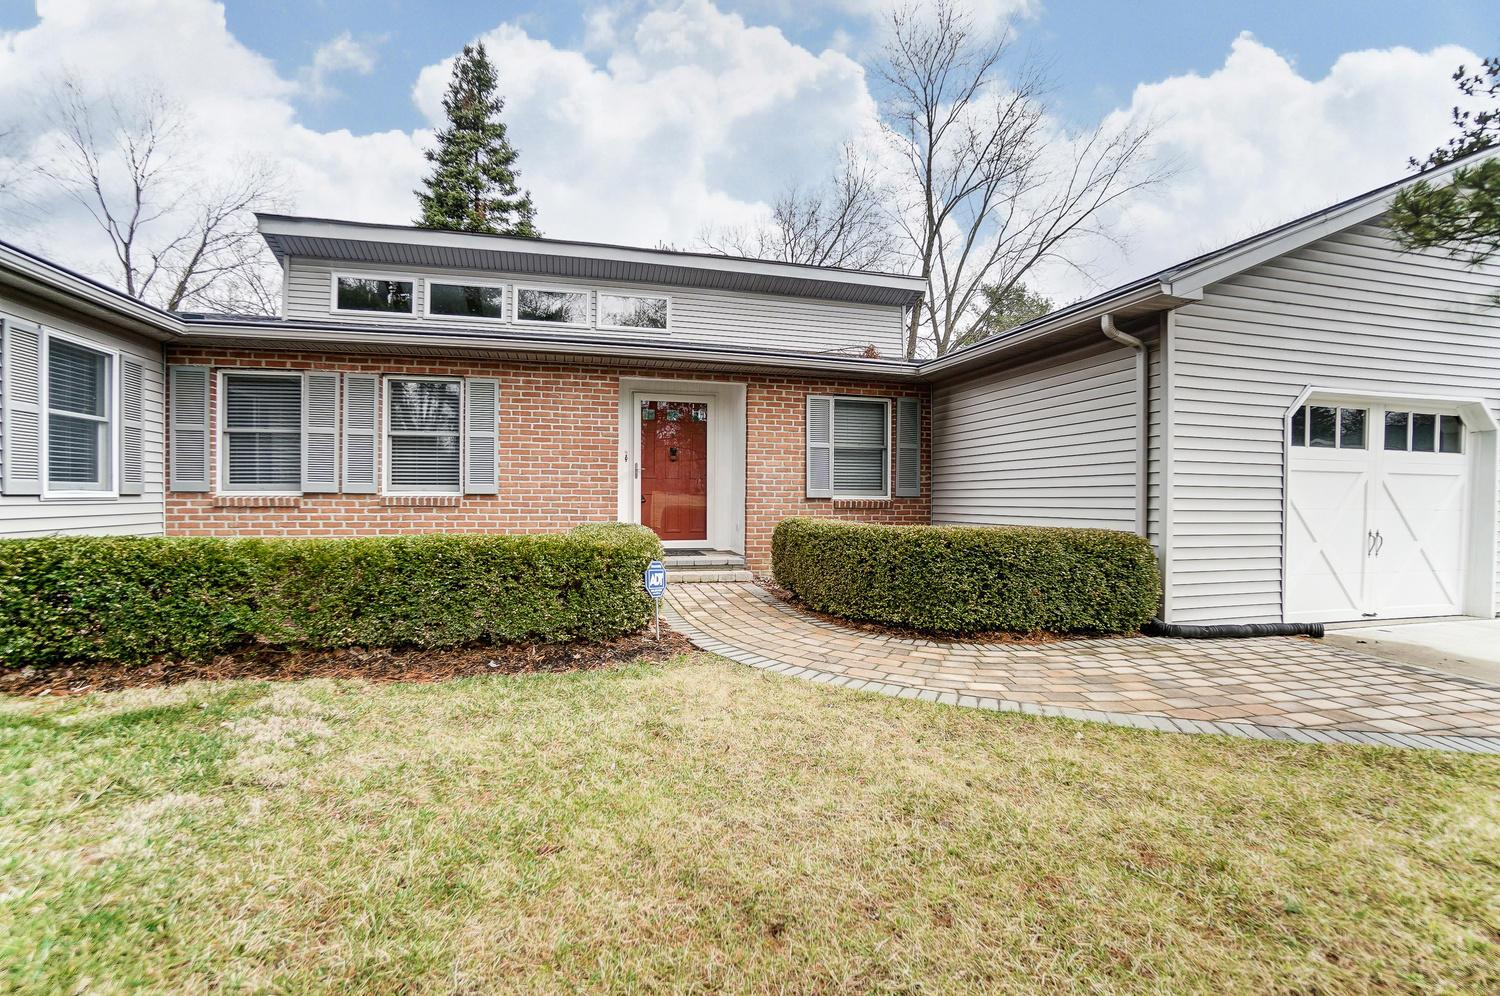 100 Chacey Lane, Worthington, Ohio 43085, 2 Bedrooms Bedrooms, ,2 BathroomsBathrooms,Residential,For Sale,Chacey,221000535